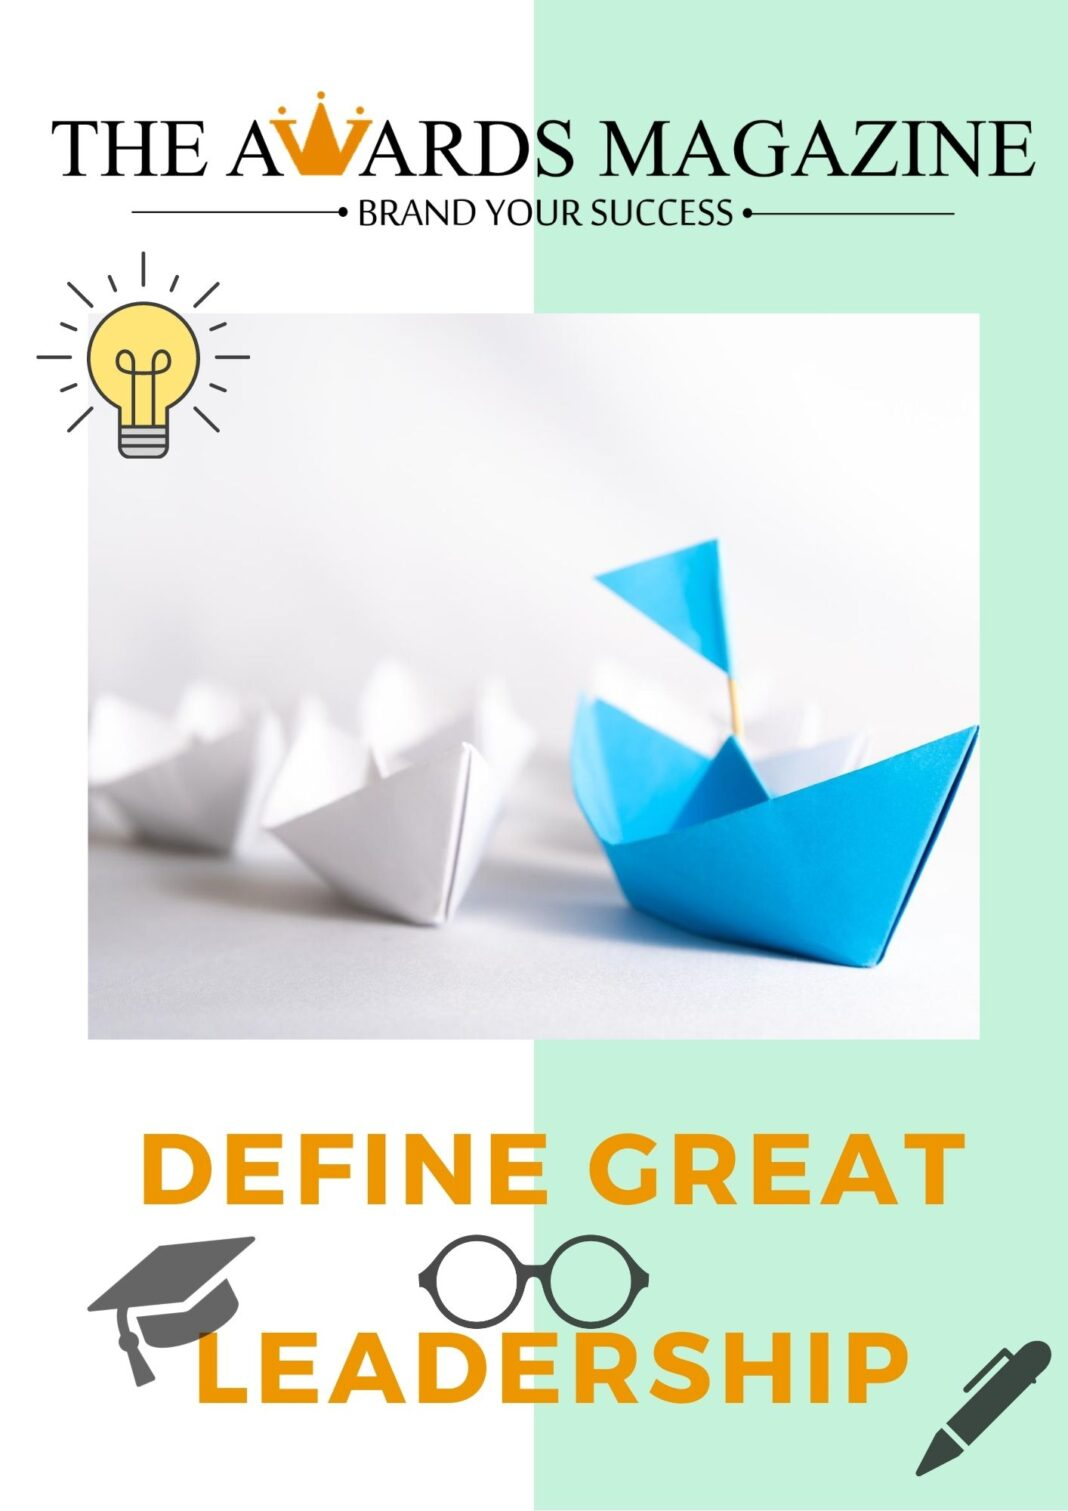 How do you Define Great Leadership?